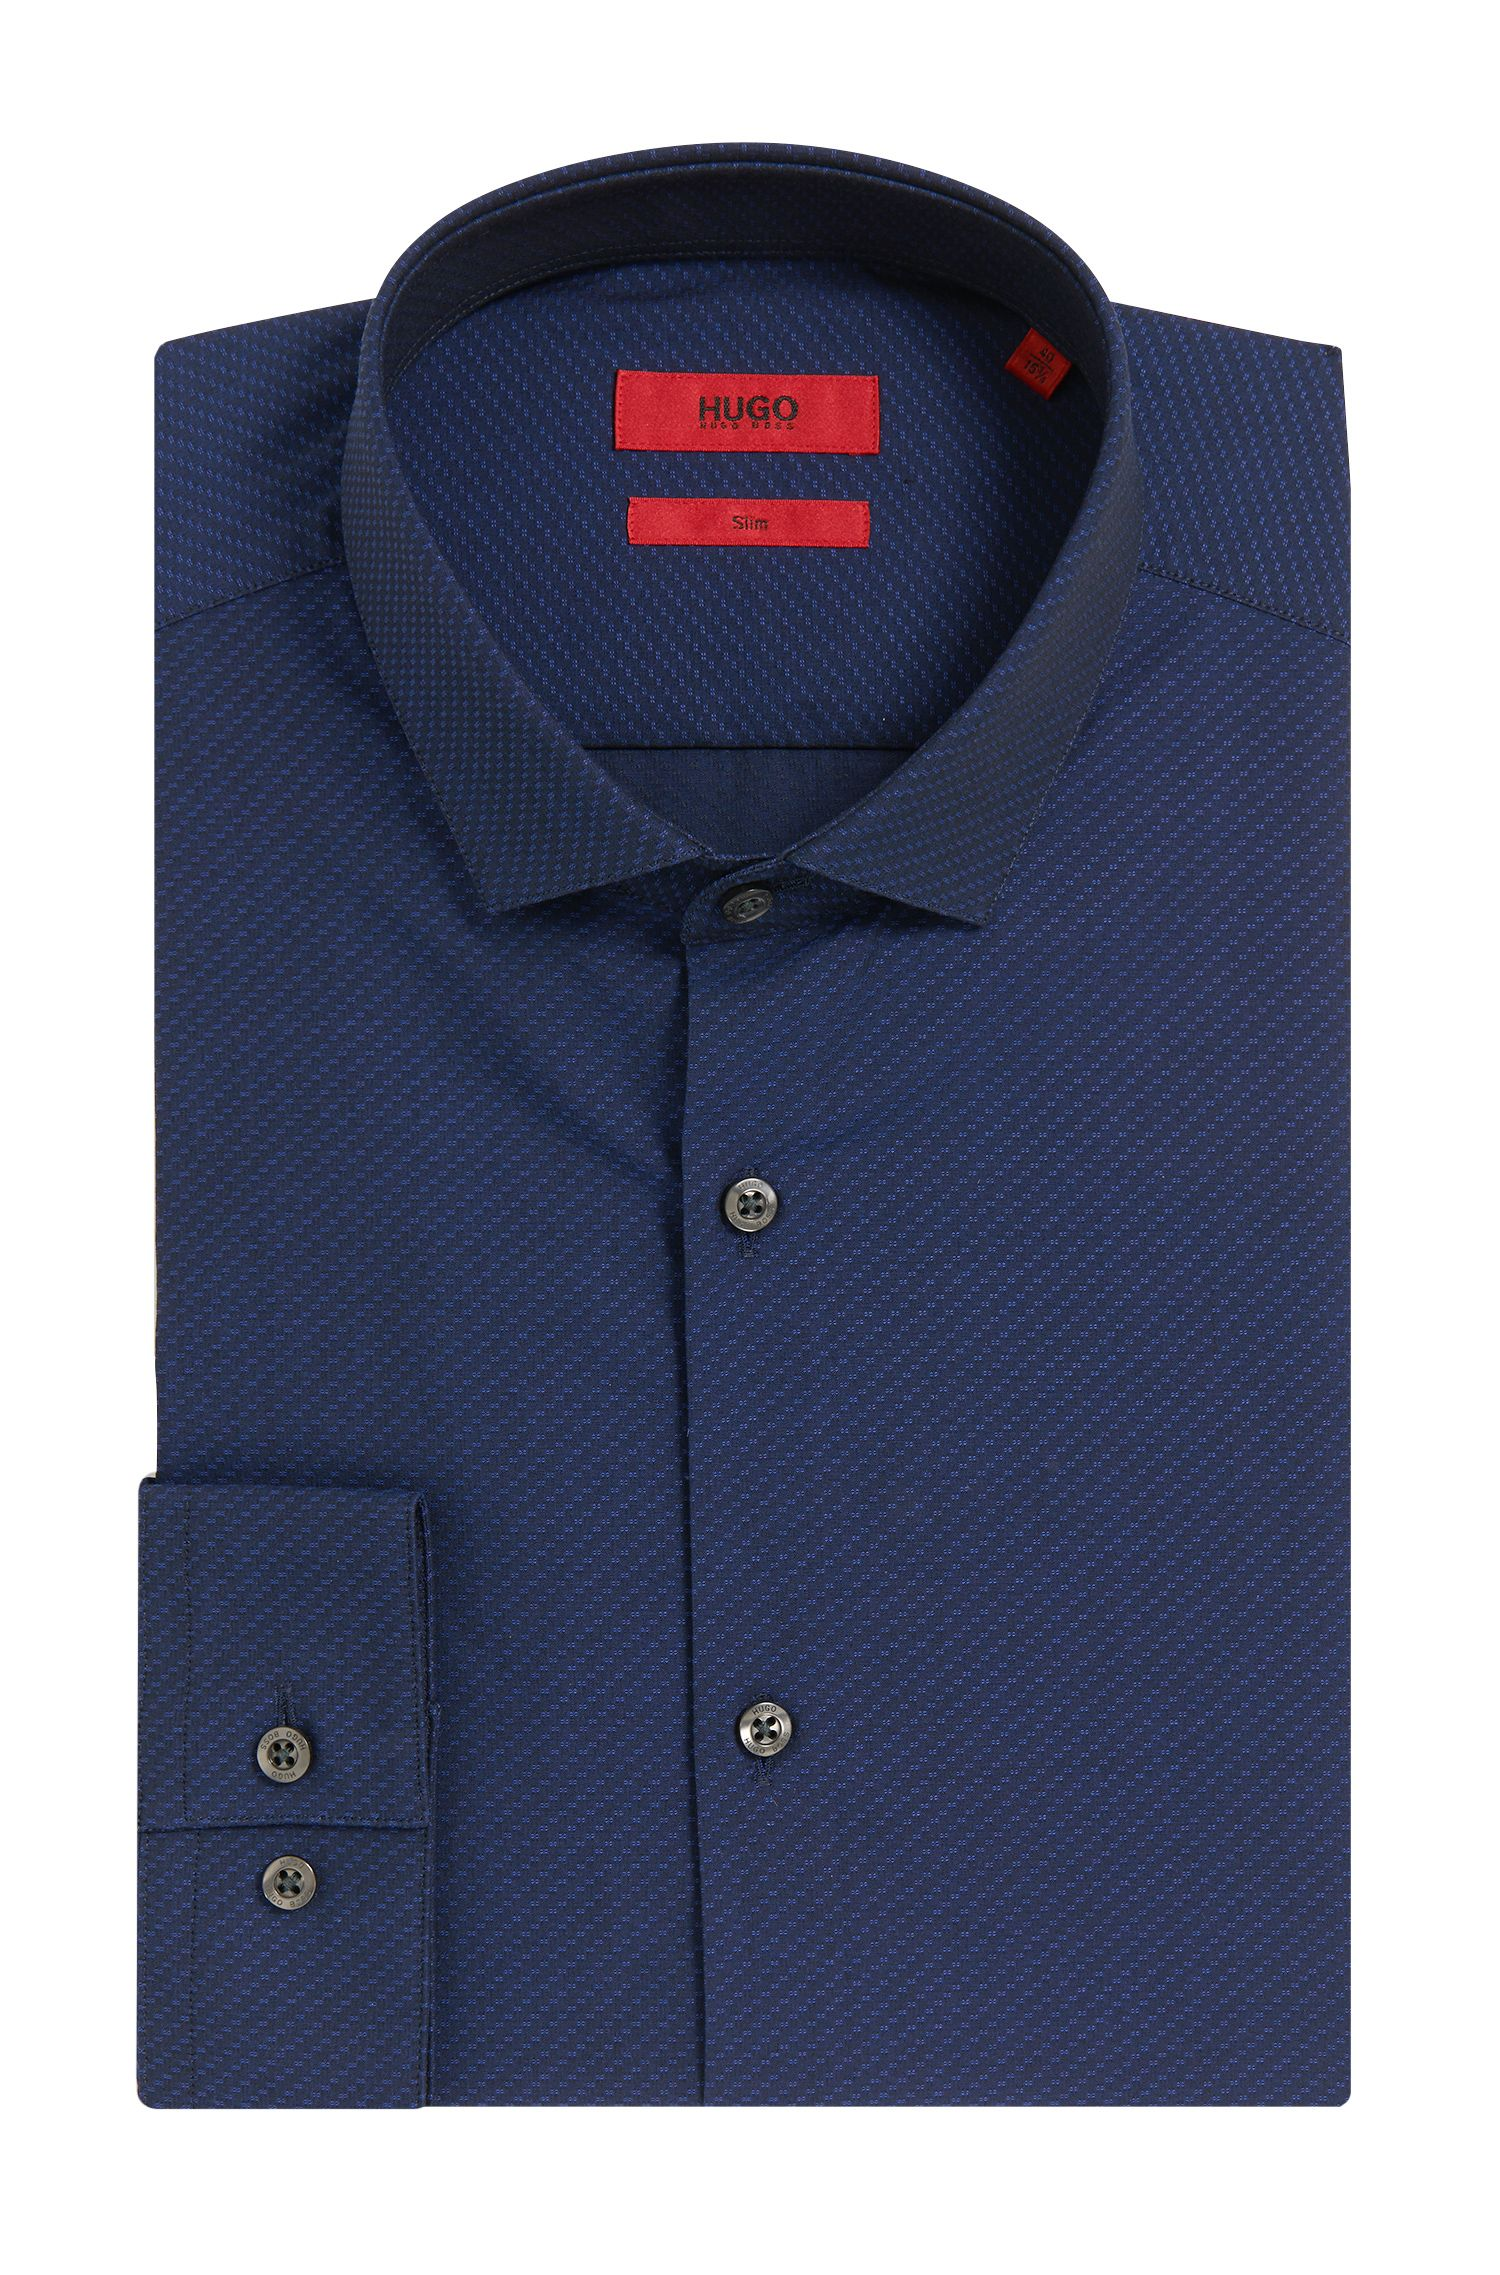 Dobby Cotton Dress Shirt, Slim Fit | Erondo